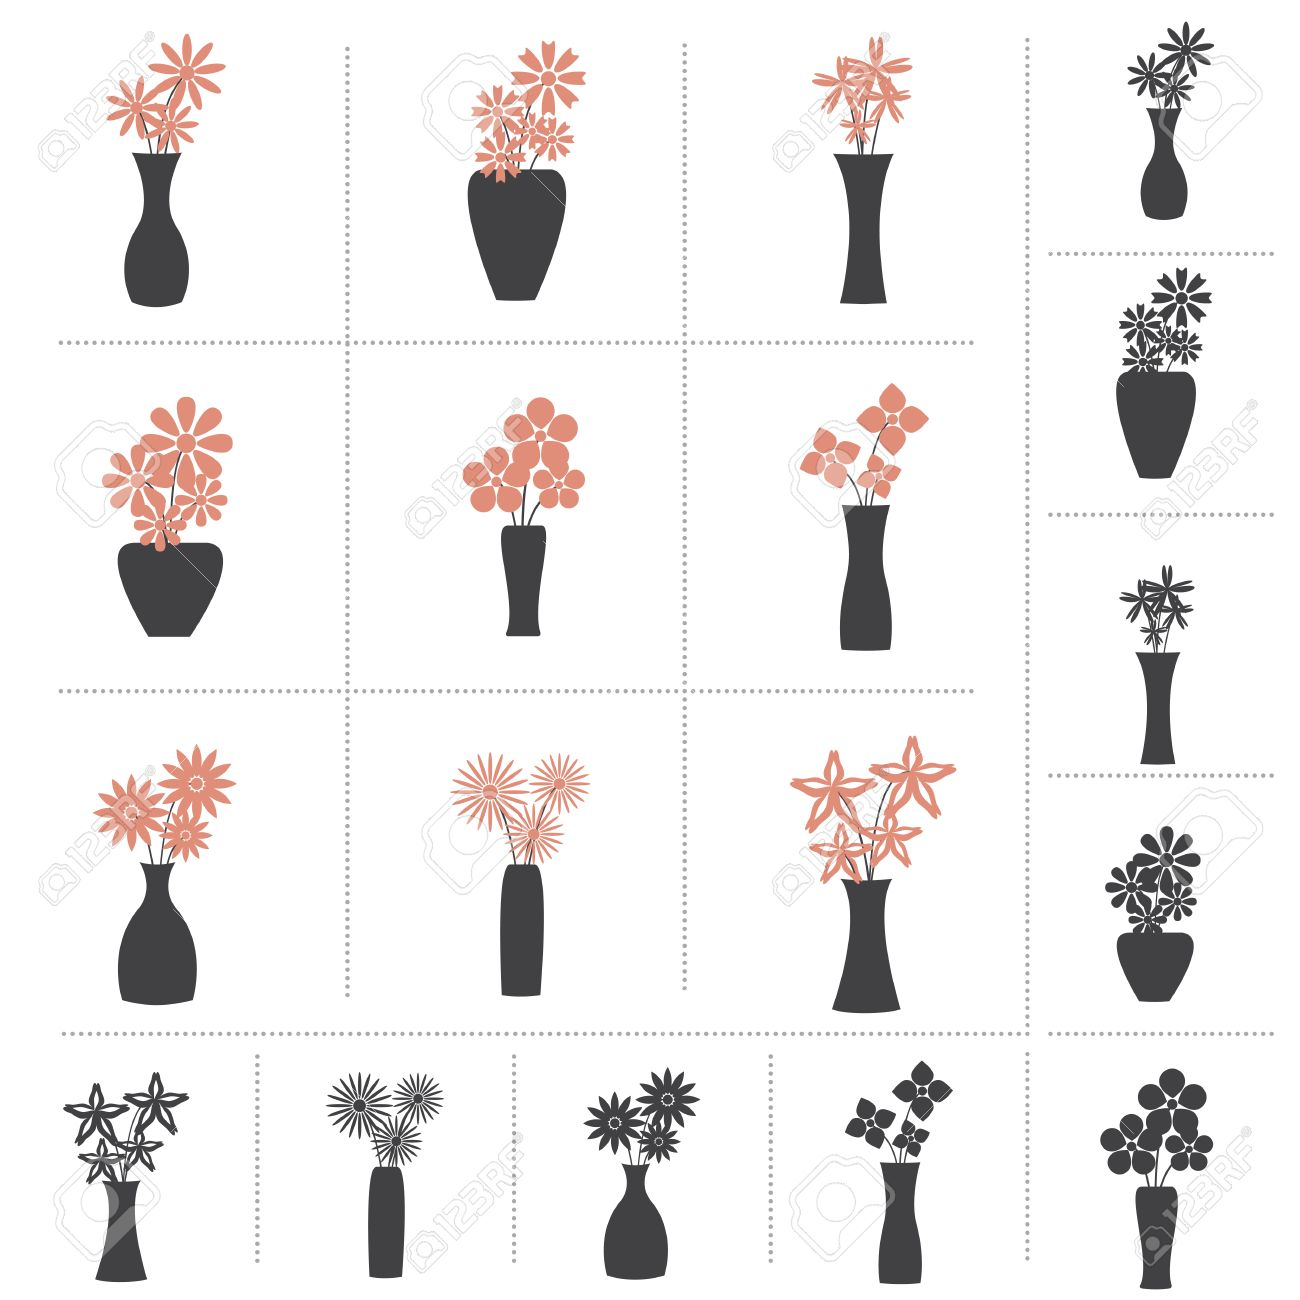 Set Of Flowers In Vase Collection 9 Different Kinds Of Flower Royalty Free Cliparts Vectors And Stock Illustration Image 43203964